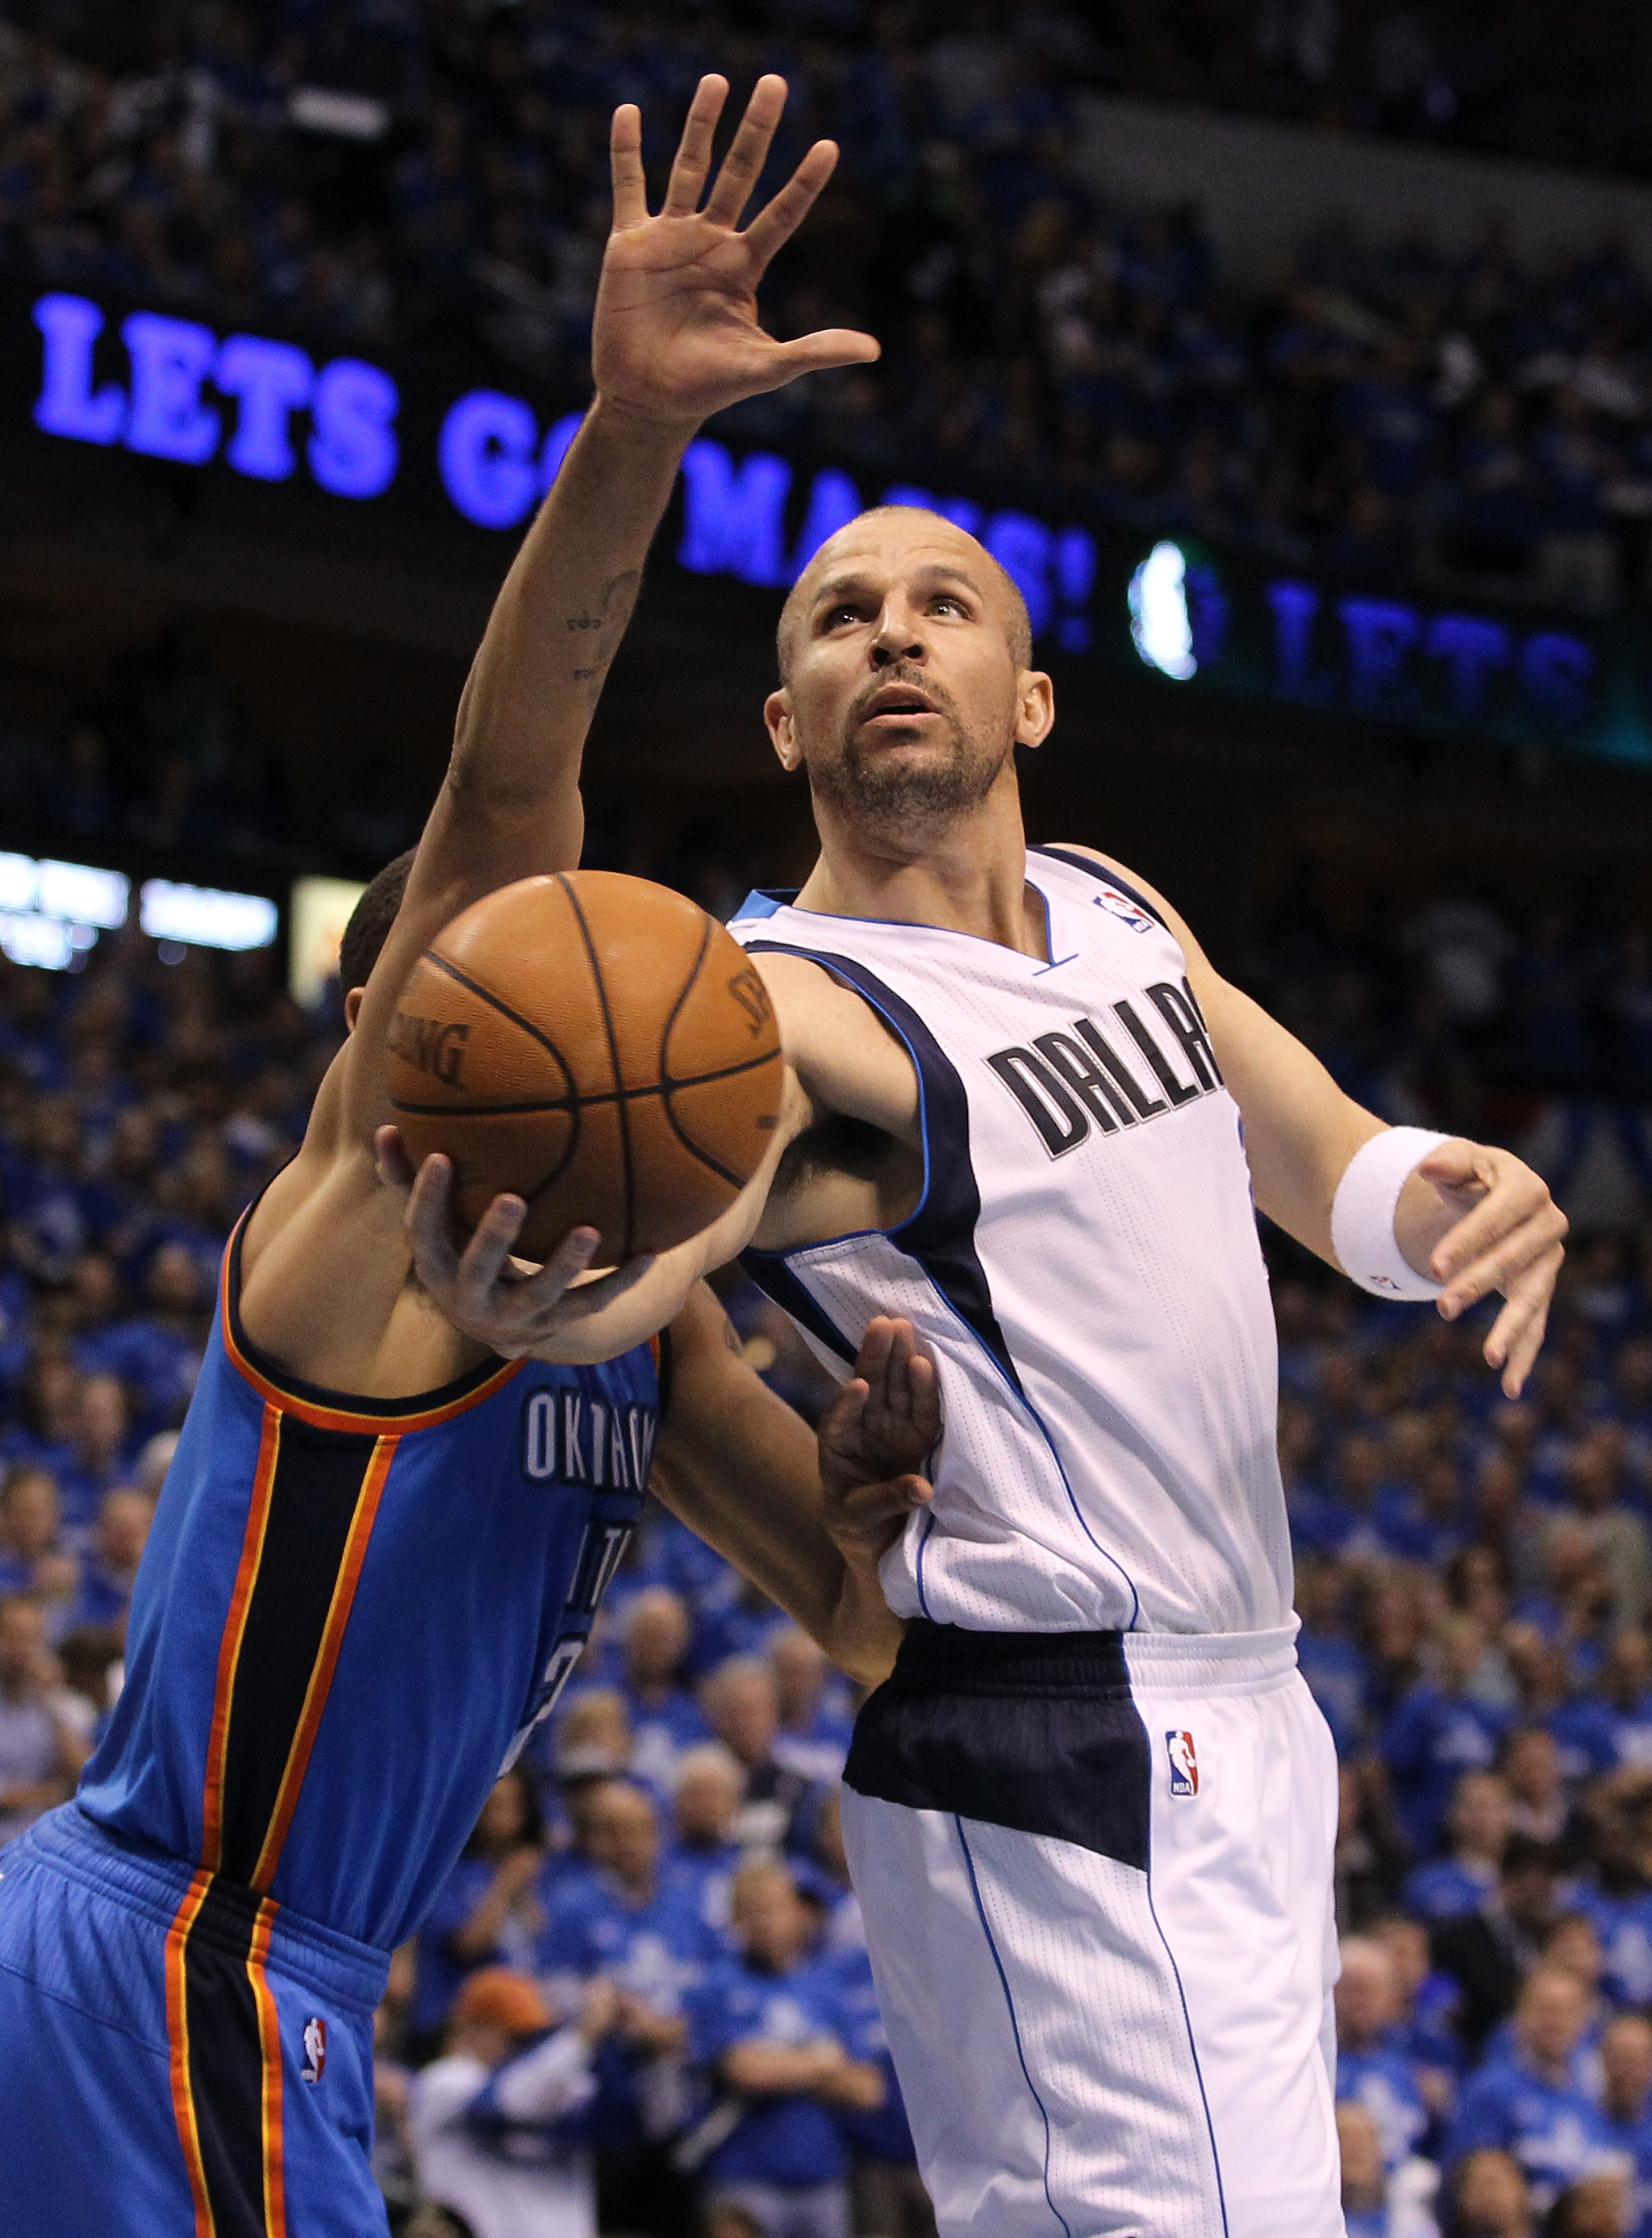 DALLAS, TX - MAY 25:  Jason Kidd #2 of the Dallas Mavericks goes up for a shot against Thabo Sefolosha #2 of the Oklahoma City Thunder in the first quarter in Game Five of the Western Conference Finals during the 2011 NBA Playoffs at American Airlines Cen